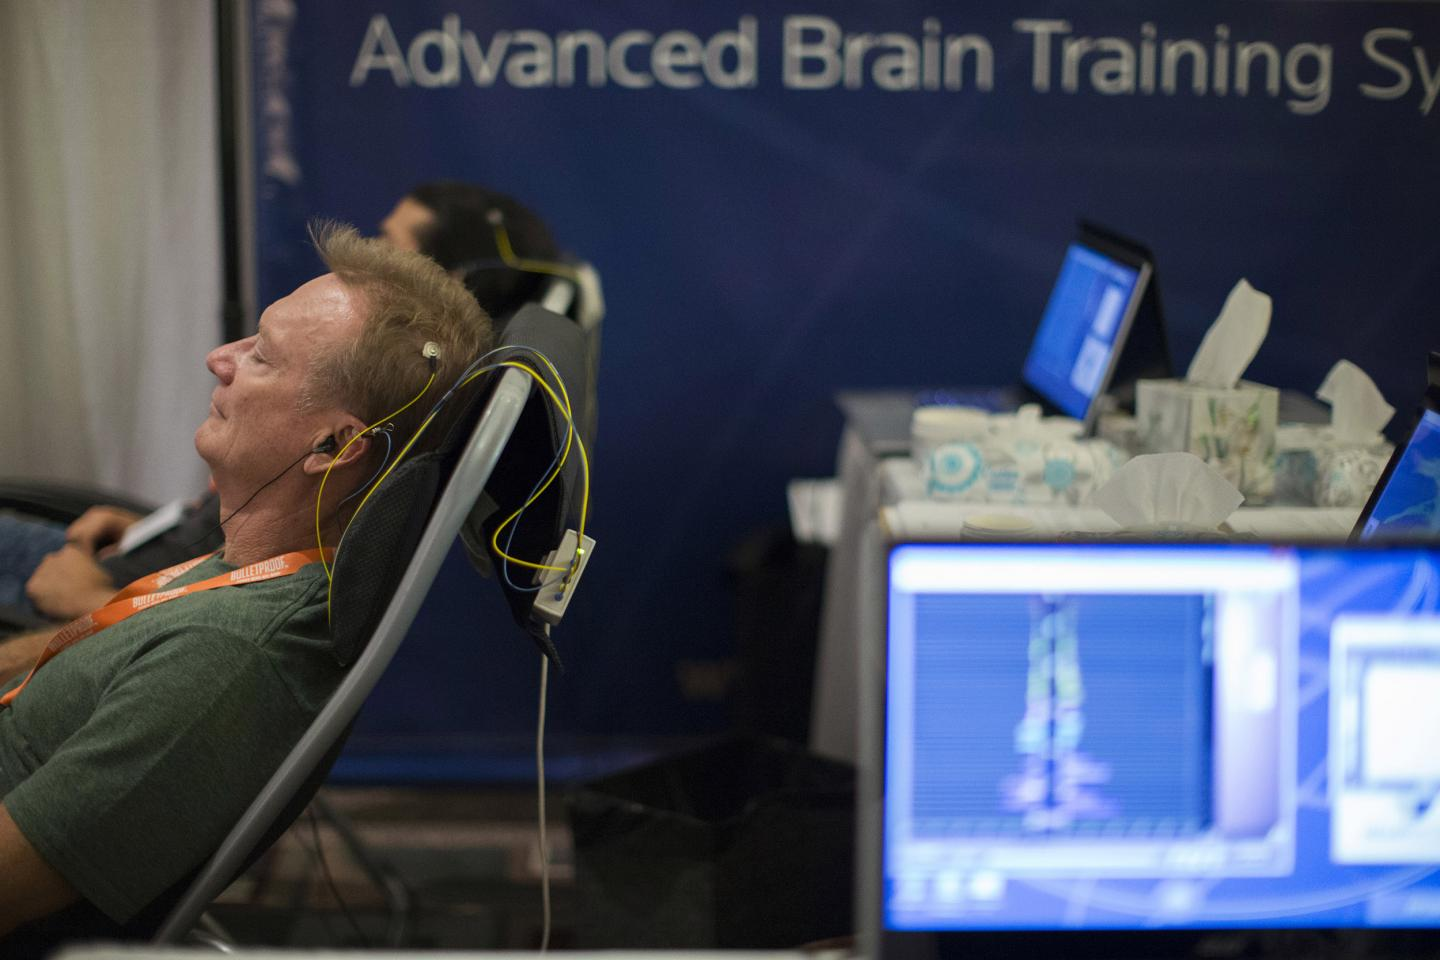 An attendee takes part in a neurofeedback session during the opening day of the second annual Bulletproof Biohacking Conference at the Pasadena Convention Center in California on September 26, 2014. Neurofeedback uses real-time displays of brain activity to teach the brain to self-regulate, a technique neurologists have wielded since the 1960s.